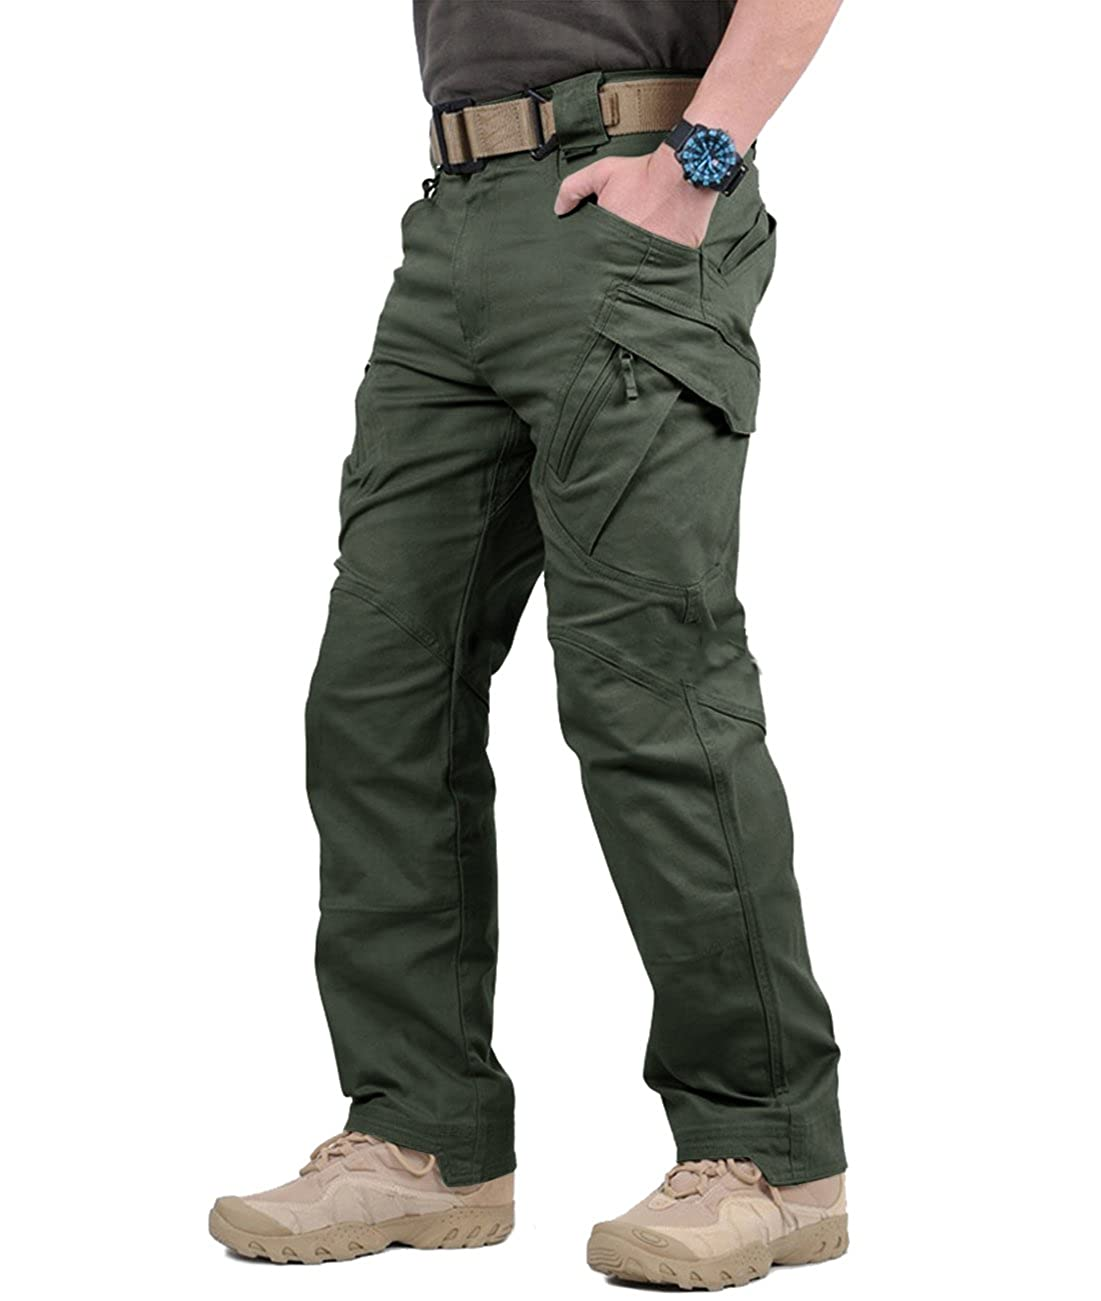 TACVASEN Men's Outdoor Tactical Pants Lightweight Assault Cargo XLTP-59